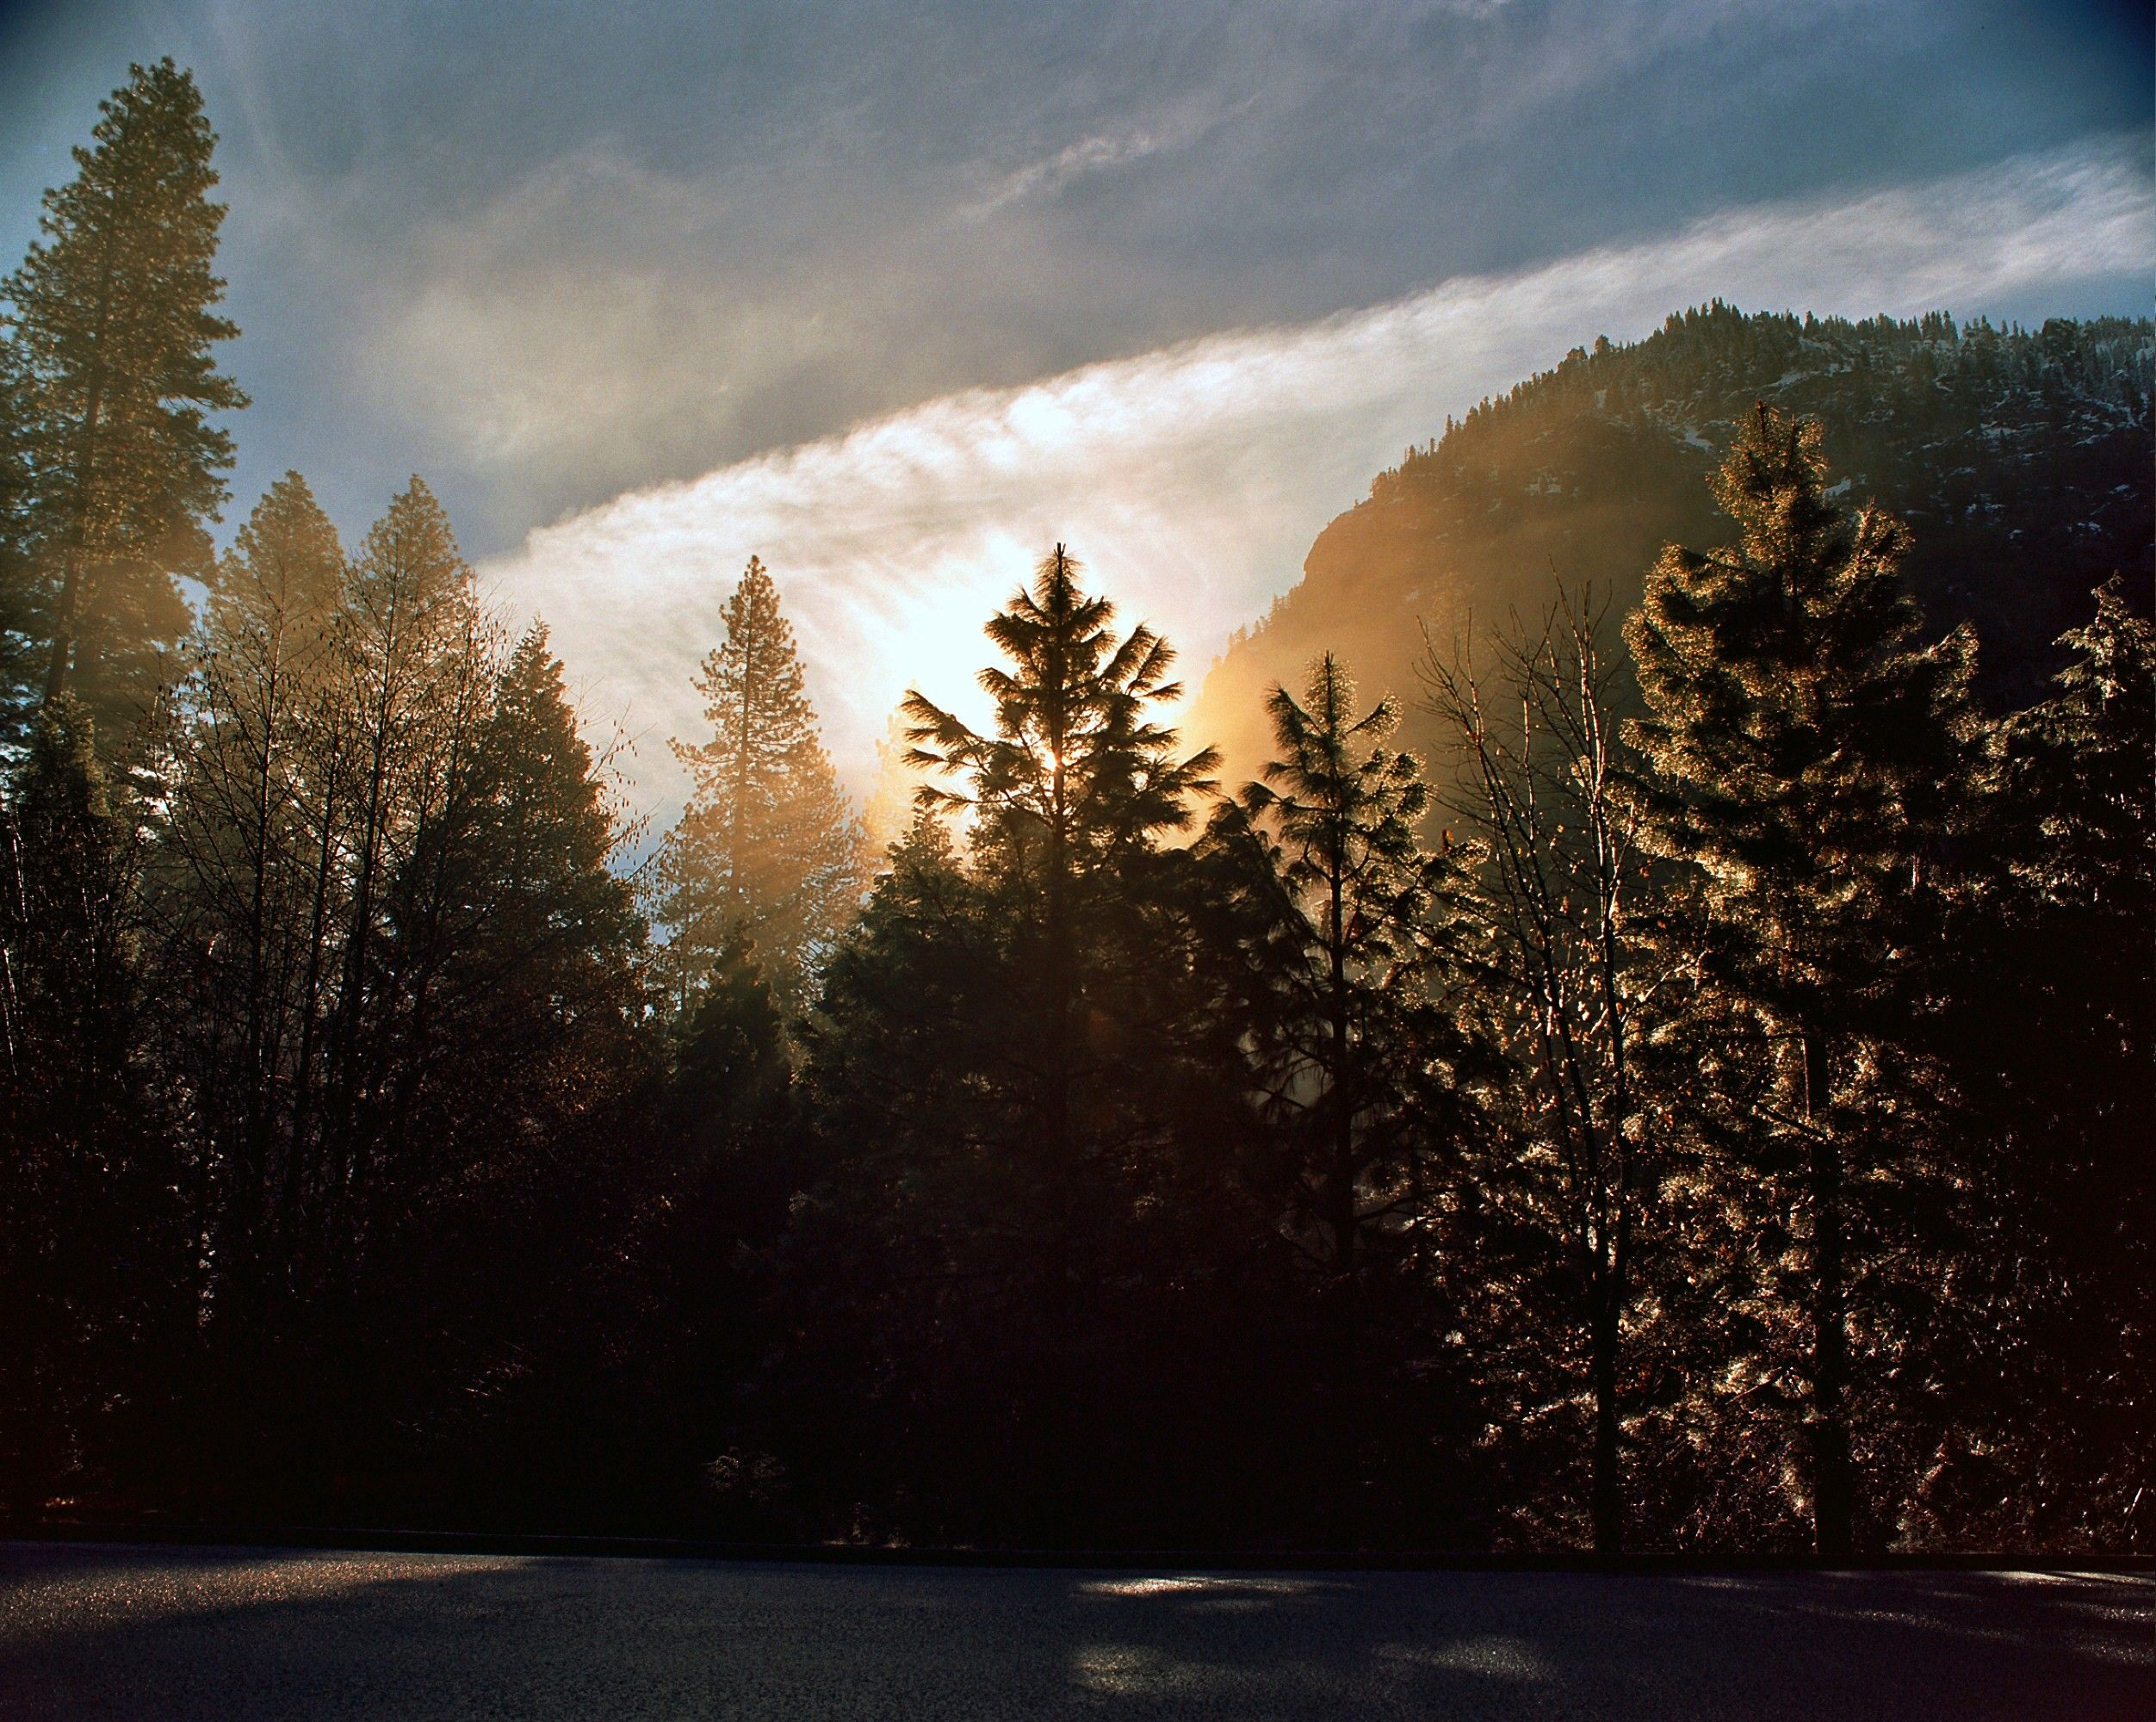 The sun peeks out from behind large pine trees at Yosemite.